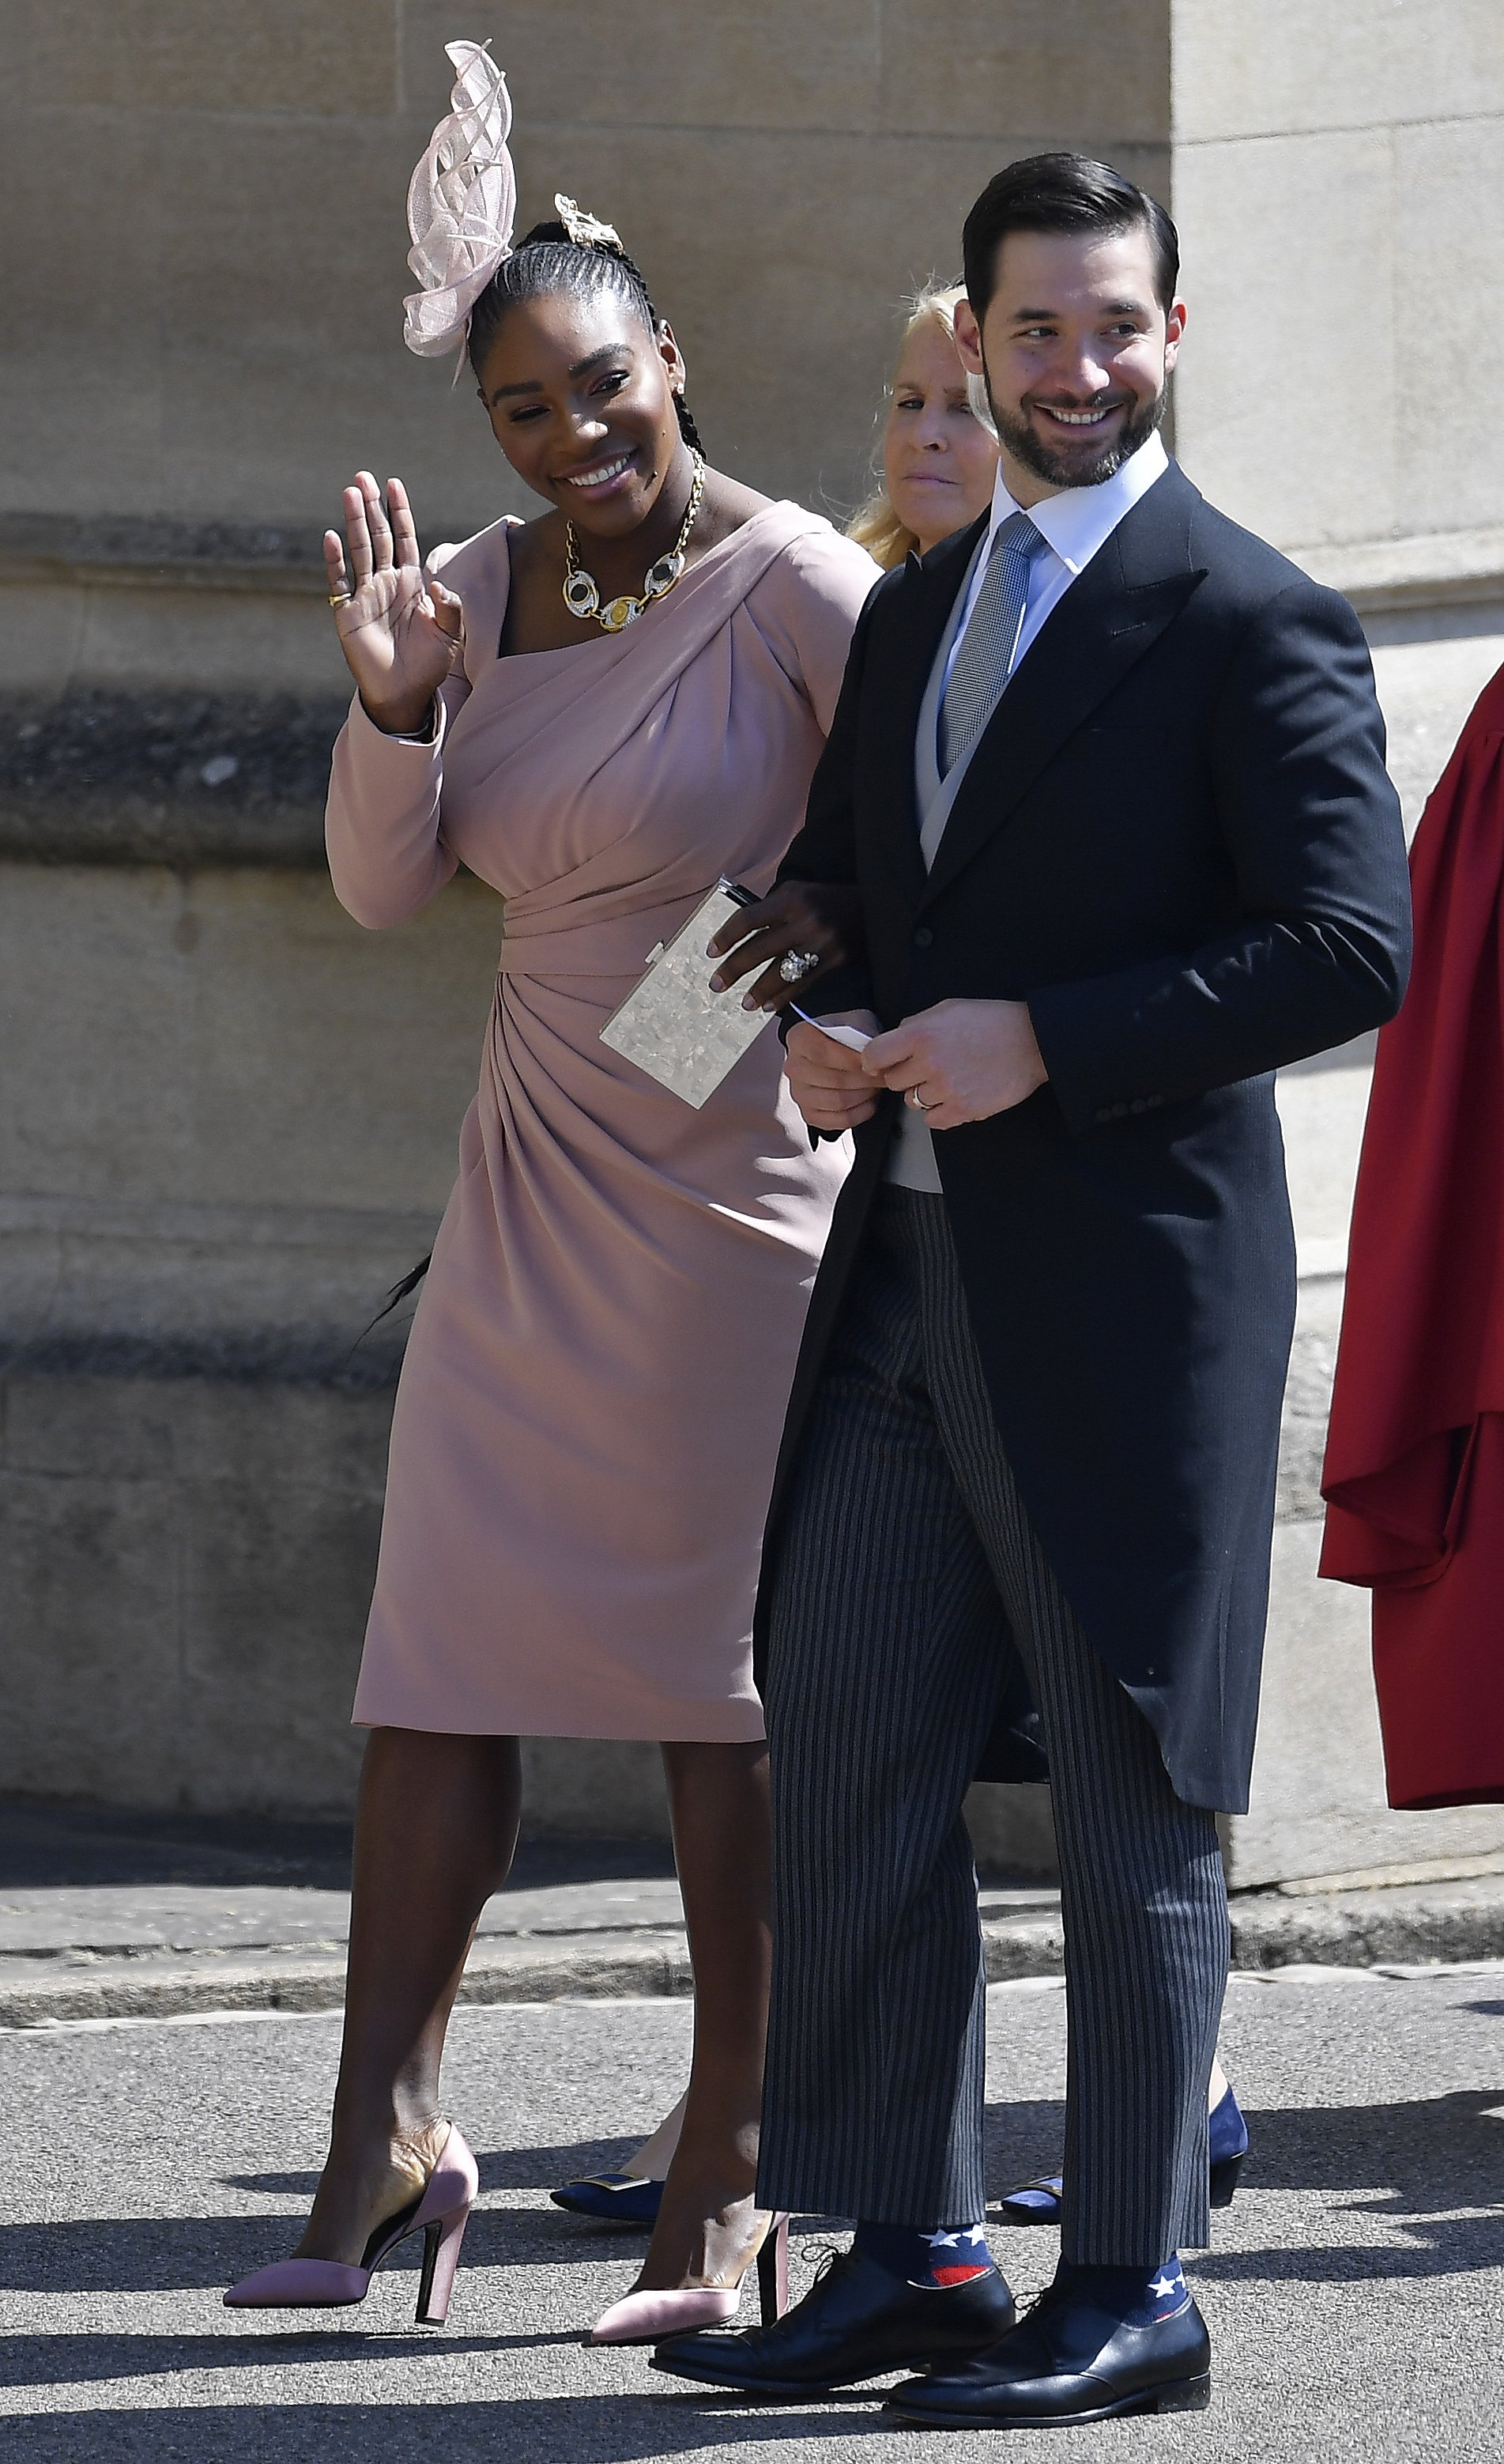 Serena Williams and Alexis Ohanian arrive at St George's Chapel at Windsor Castle before the wedding of Prince Harry to Meghan Markle on May 19, 2018. | Photo: GettyImages